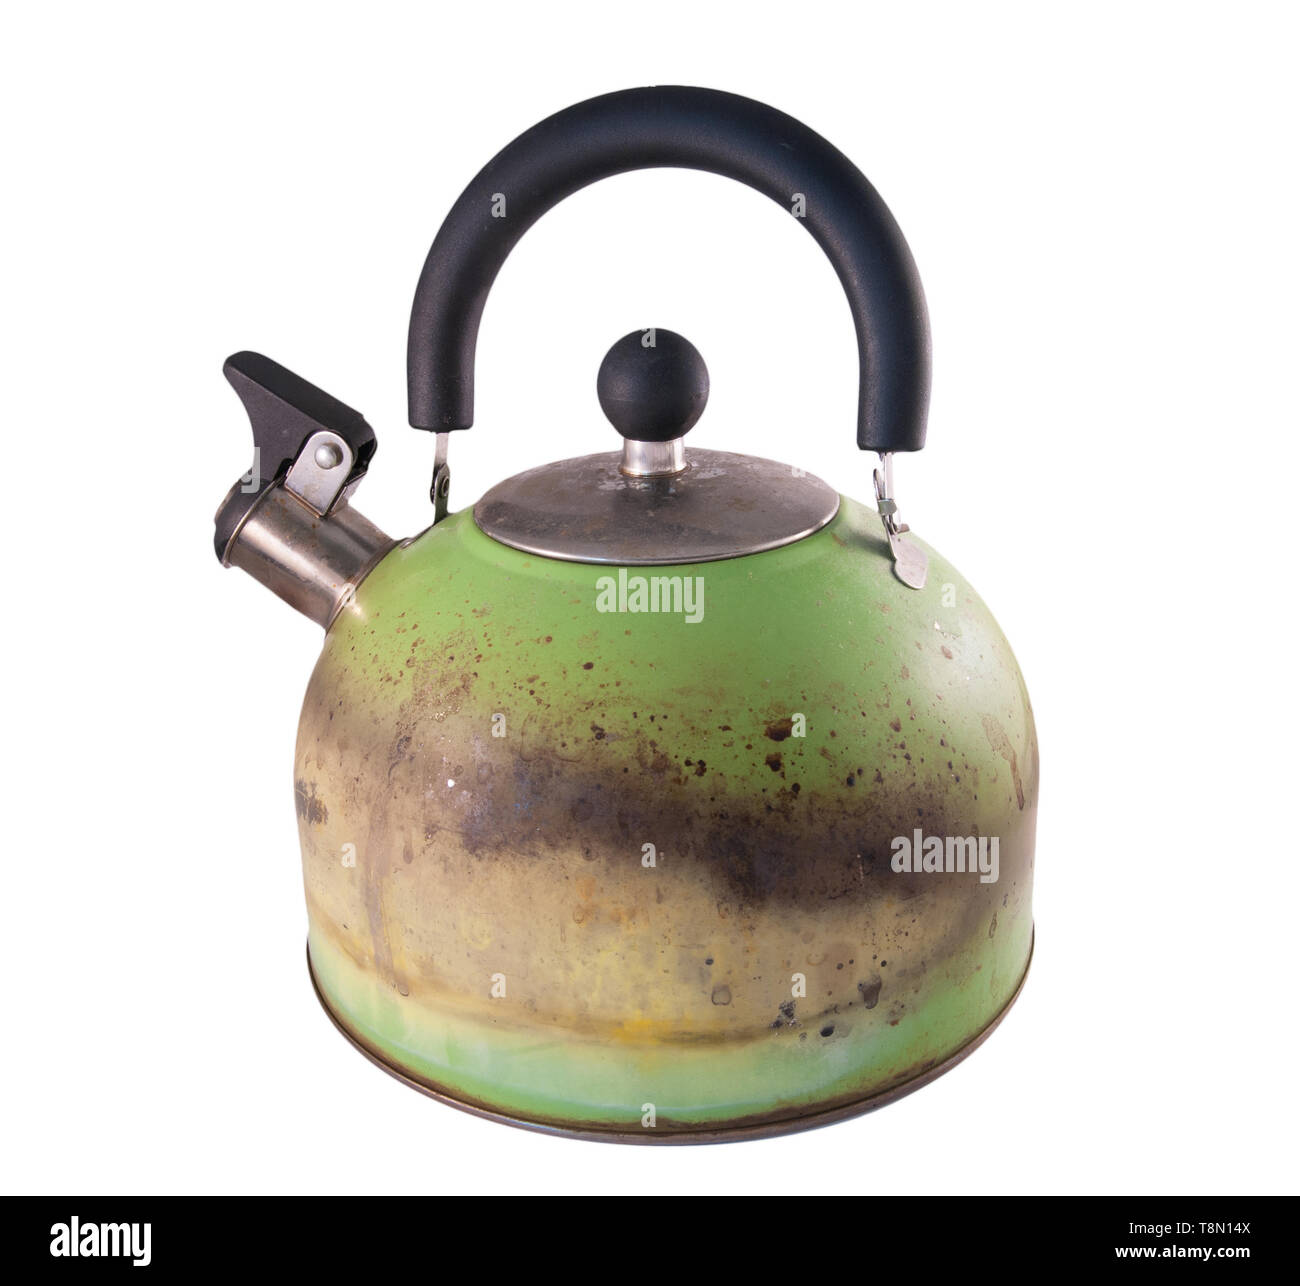 Kettle damaged by fire from a gas stove. Isolated on a white background - Stock Image